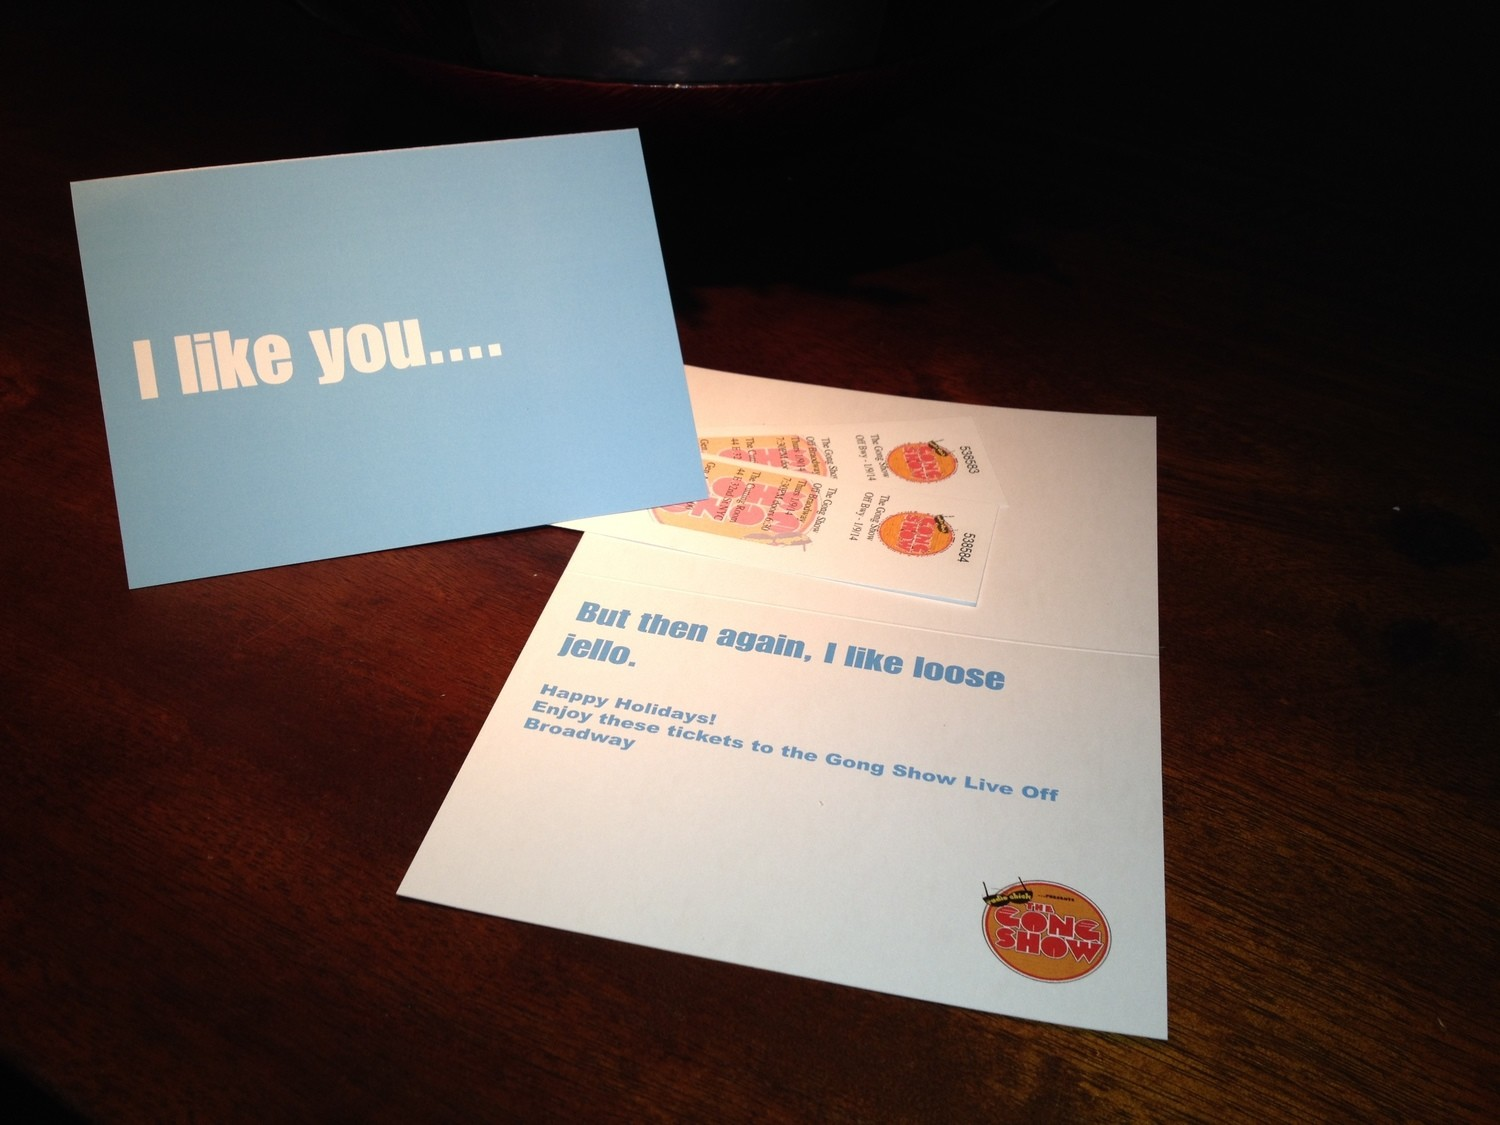 I like you Holiday gift card with 2 tickets